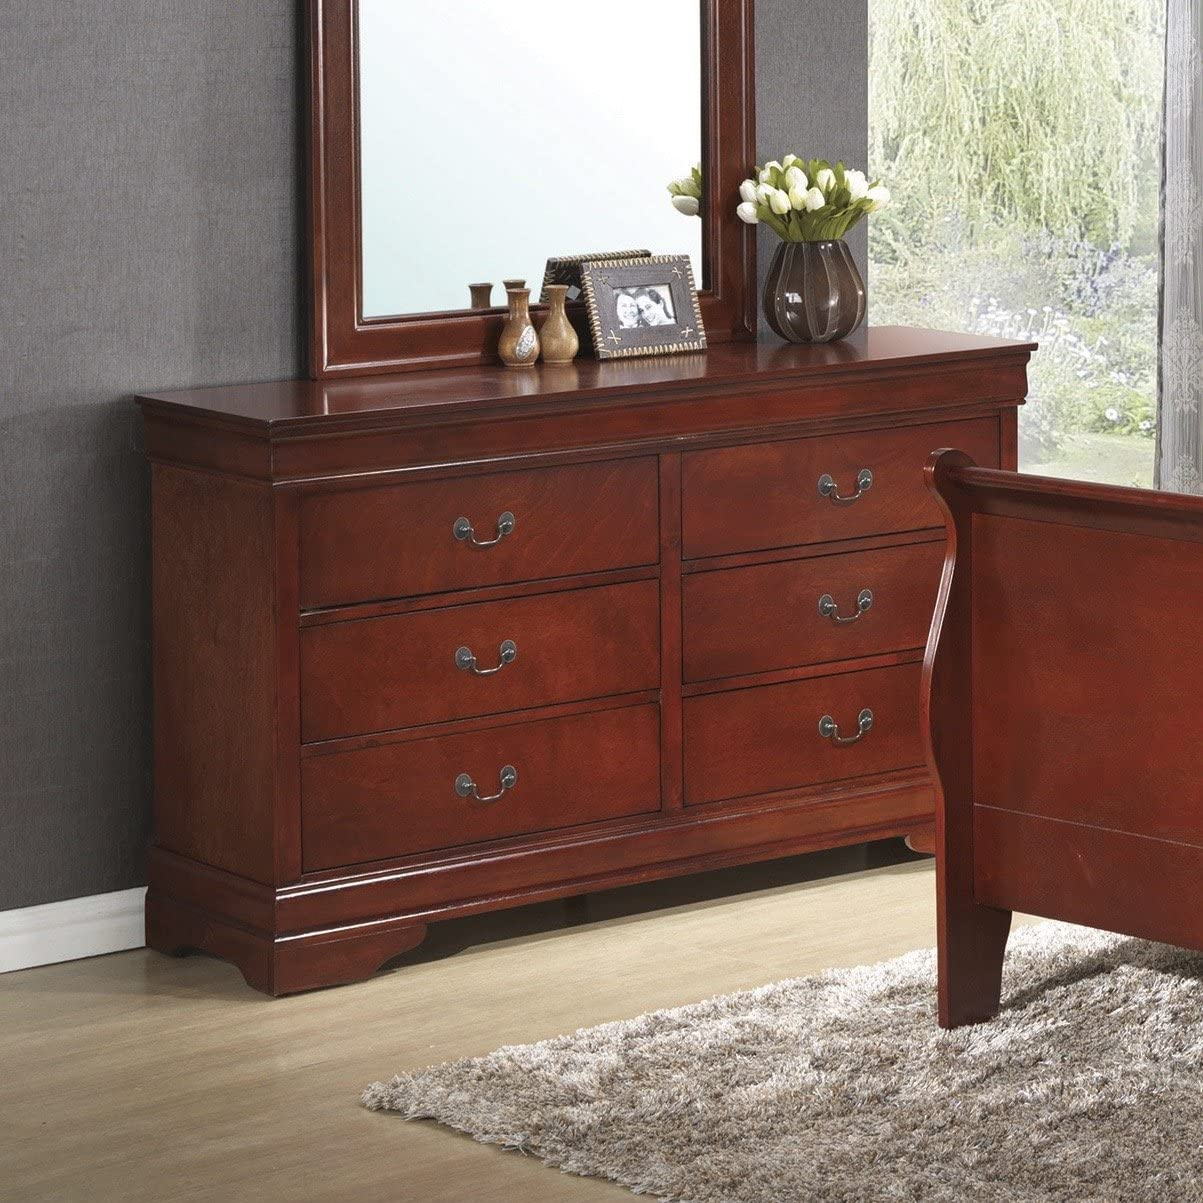 Coaster Home Furnishings Louis Philippe 6-Drawer Dresser Red Brown